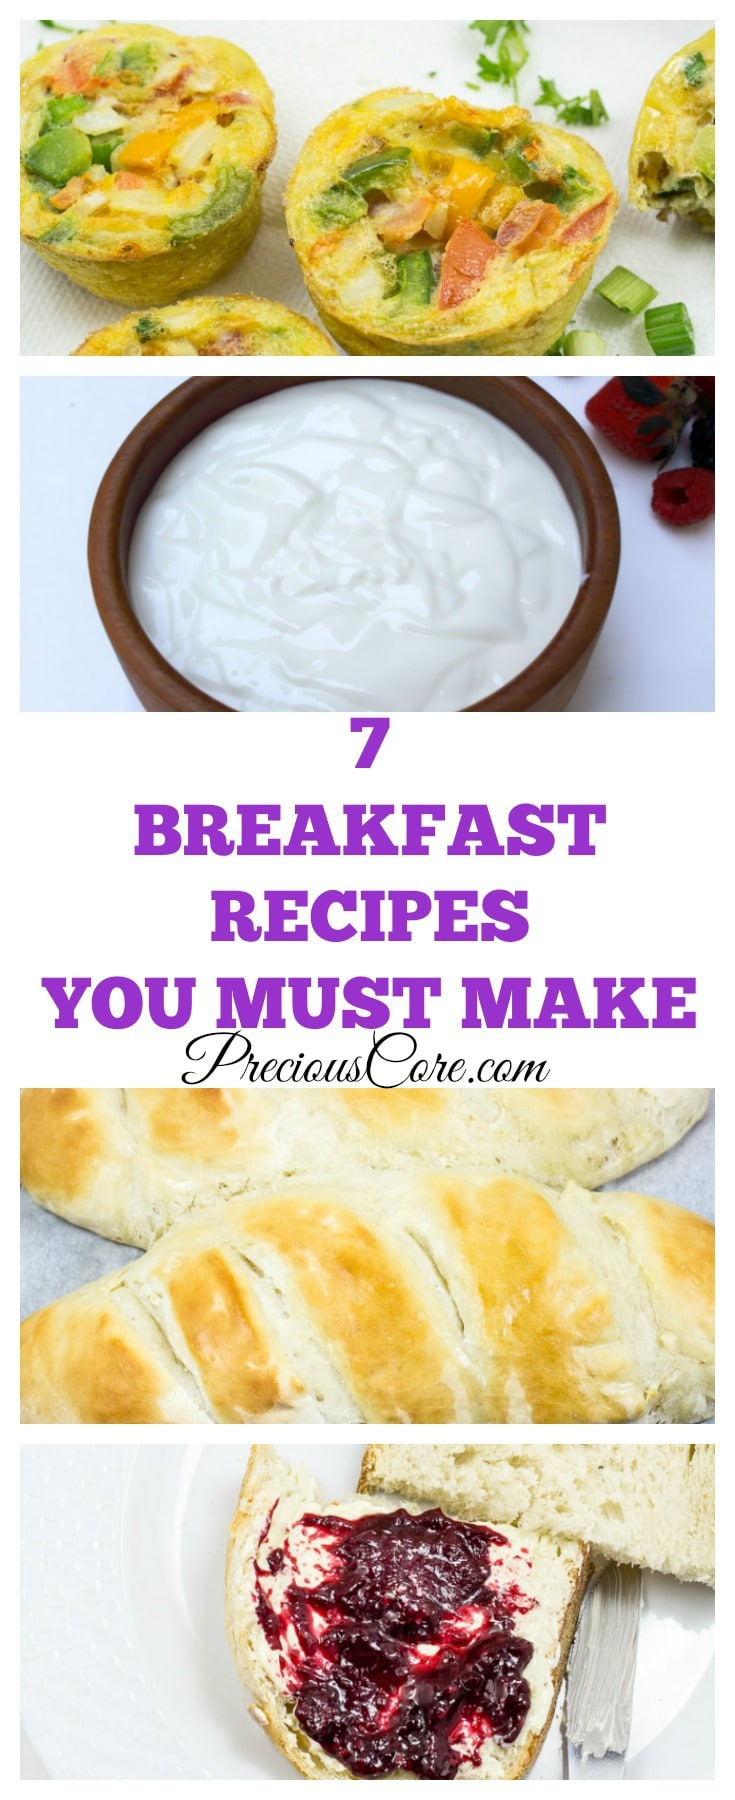 7 breakfast recipe ideas. The range from make-ahead to fast and easy!